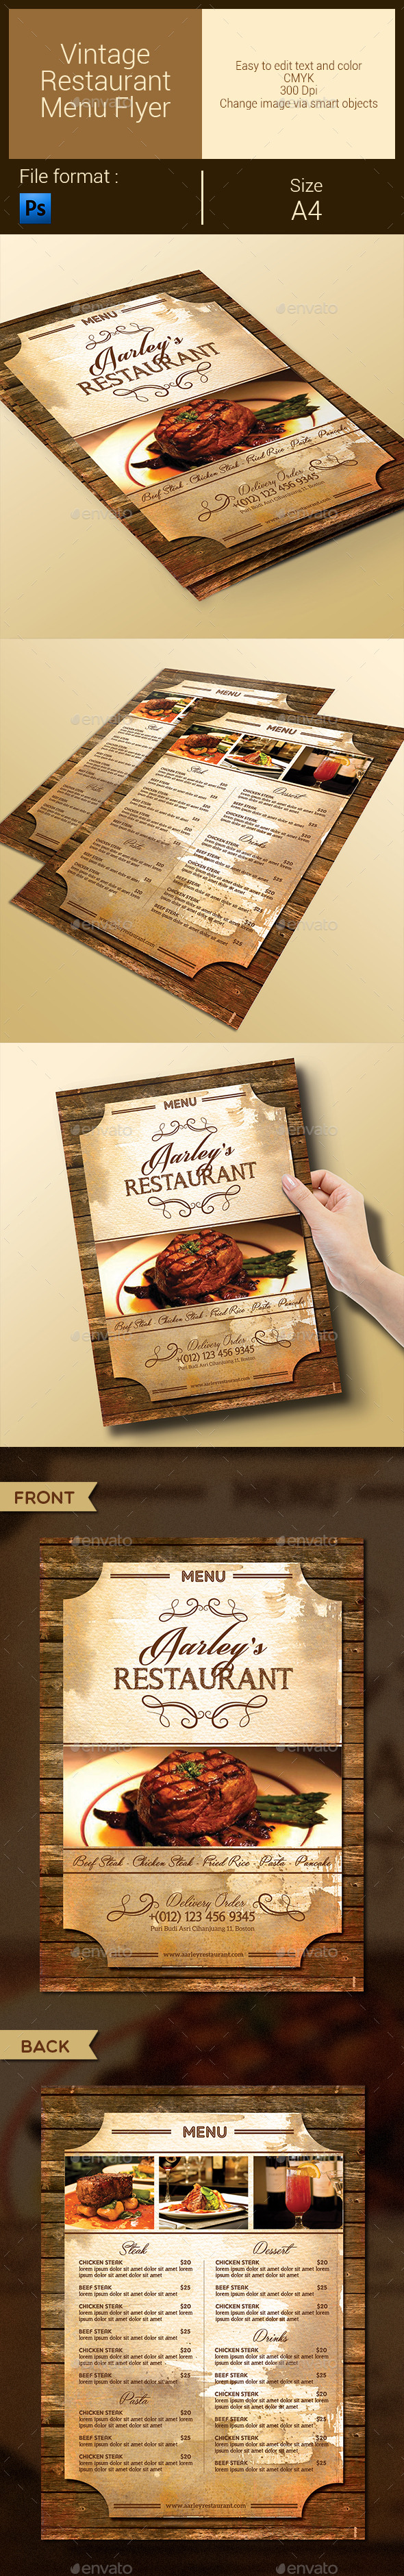 Vintage Restaurant Menu Flyer - Food Menus Print Templates